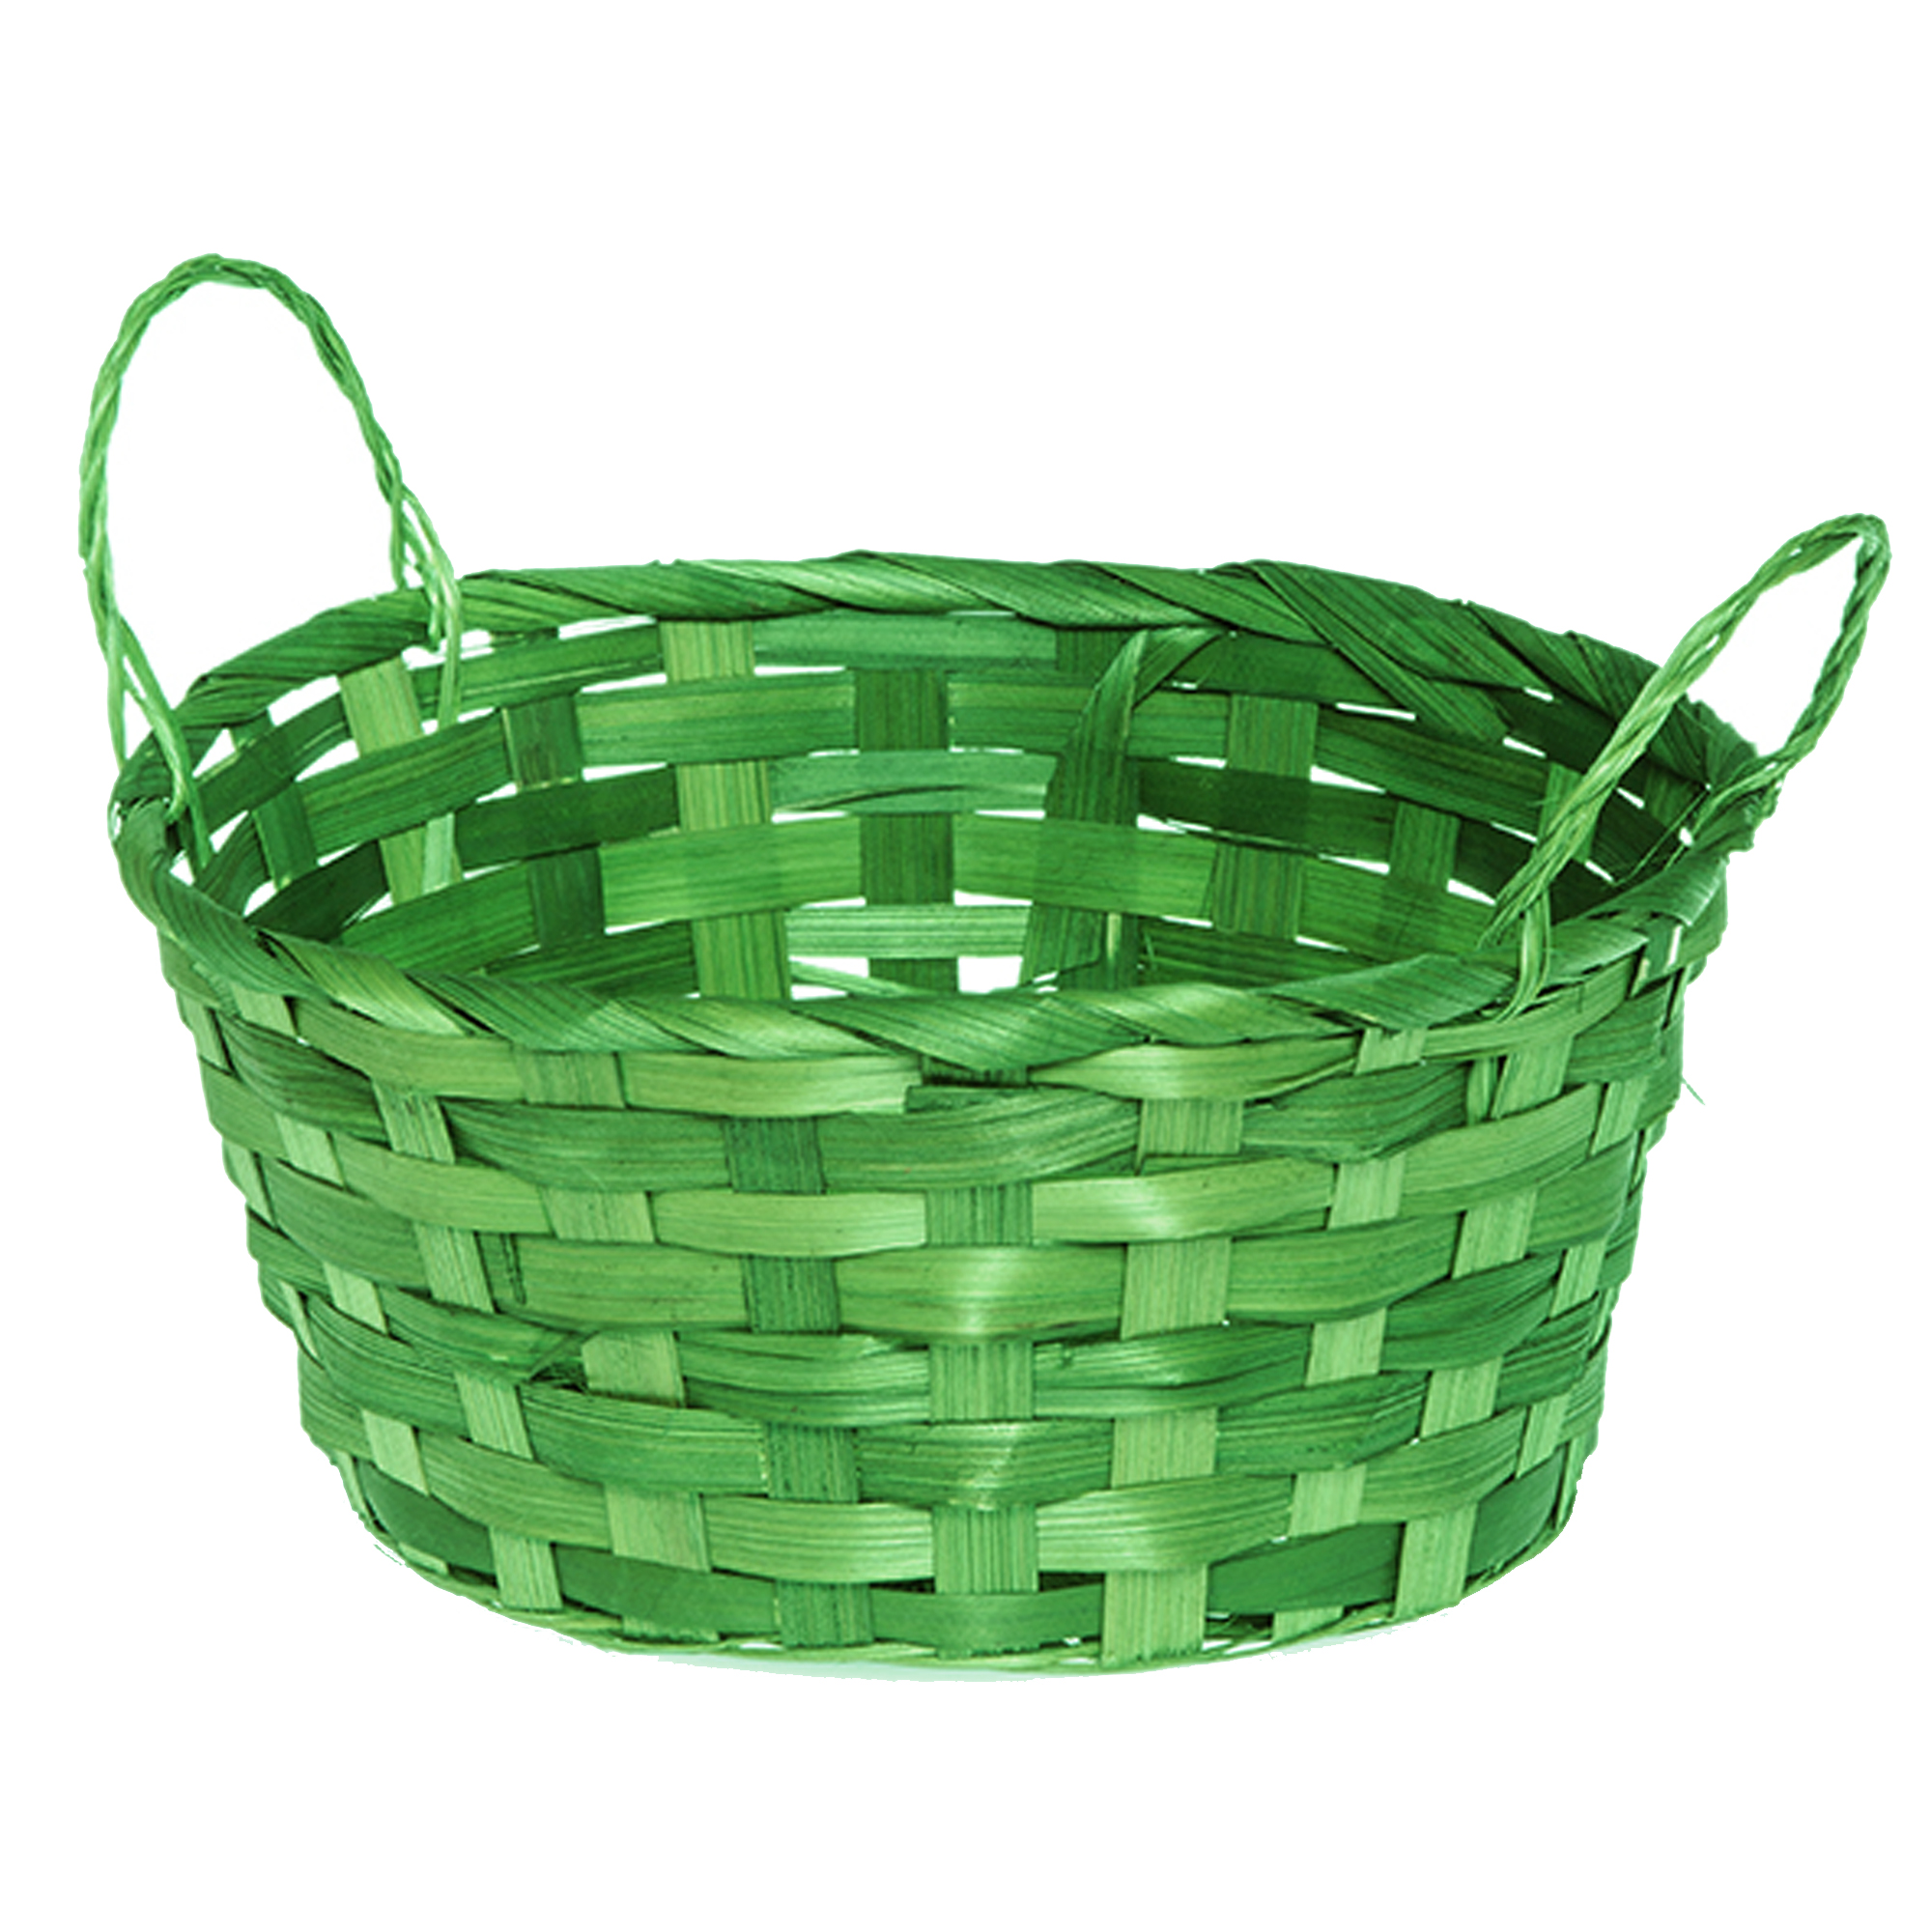 Round Bamboo Utility Basket with Ear Handles  - Green 8in